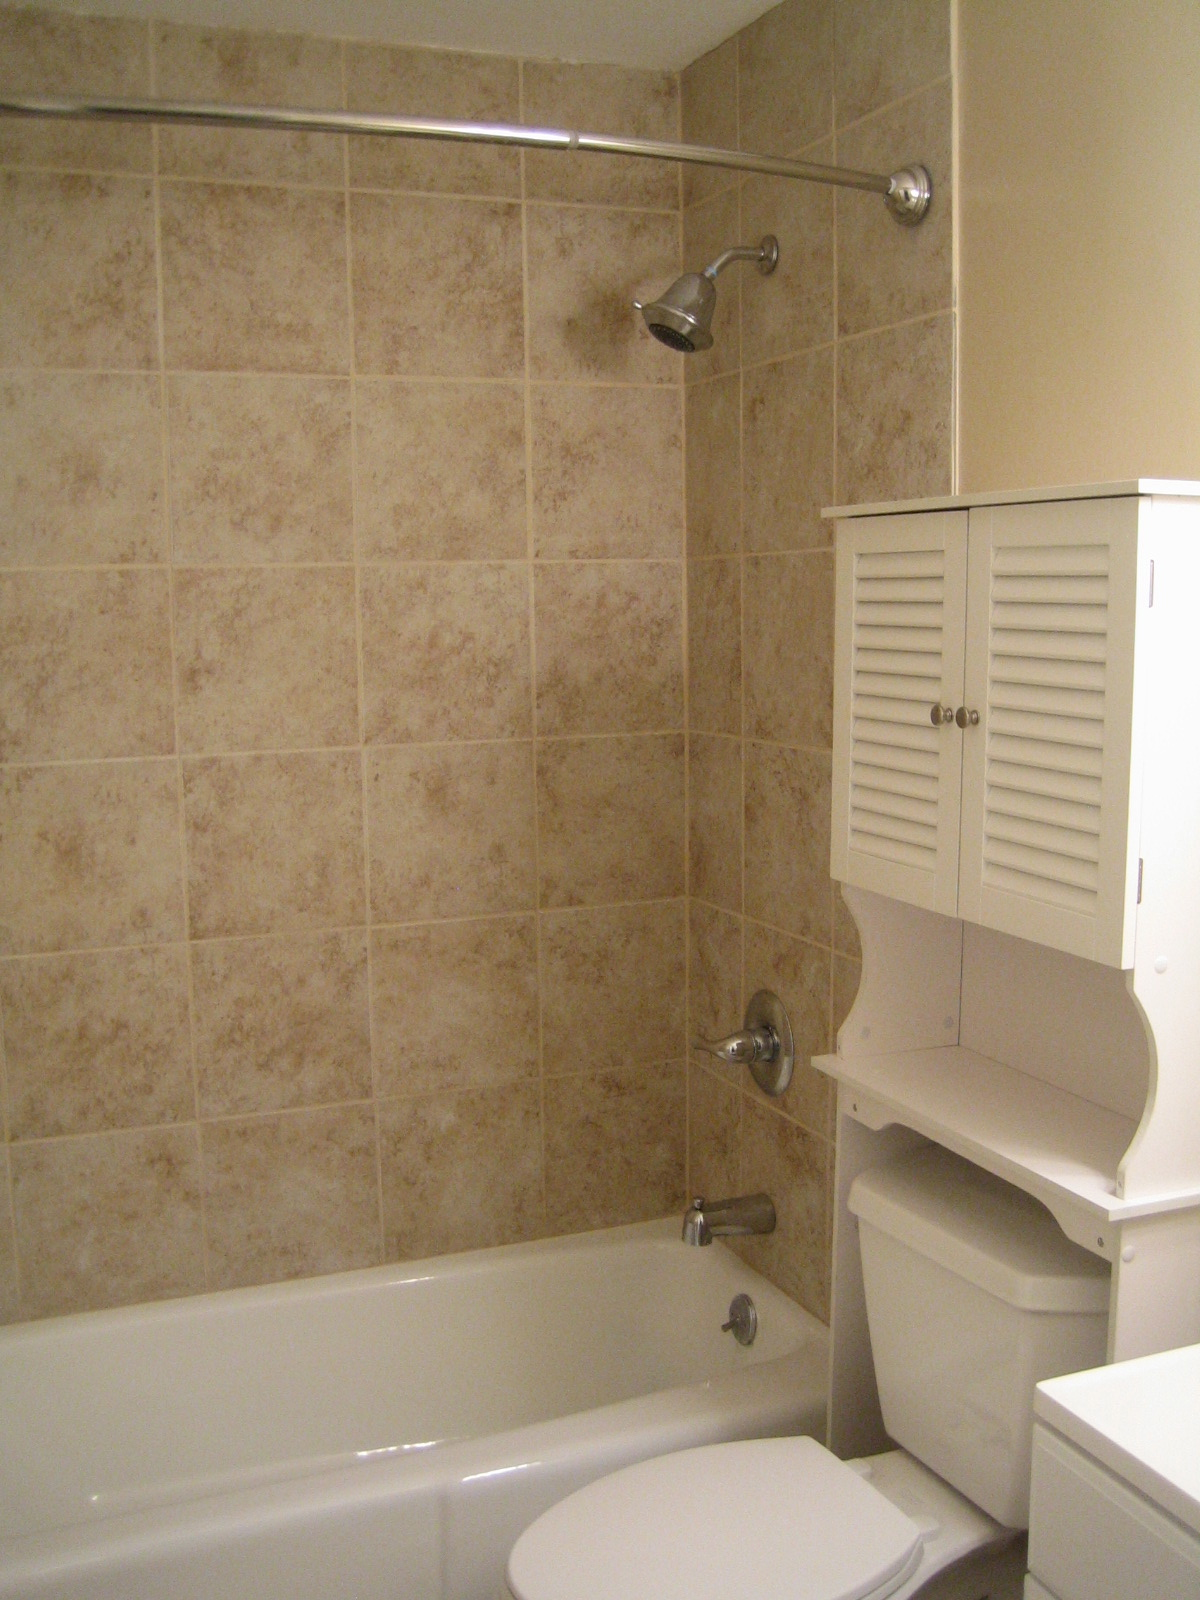 Remodel your bathroom with MV Construction today